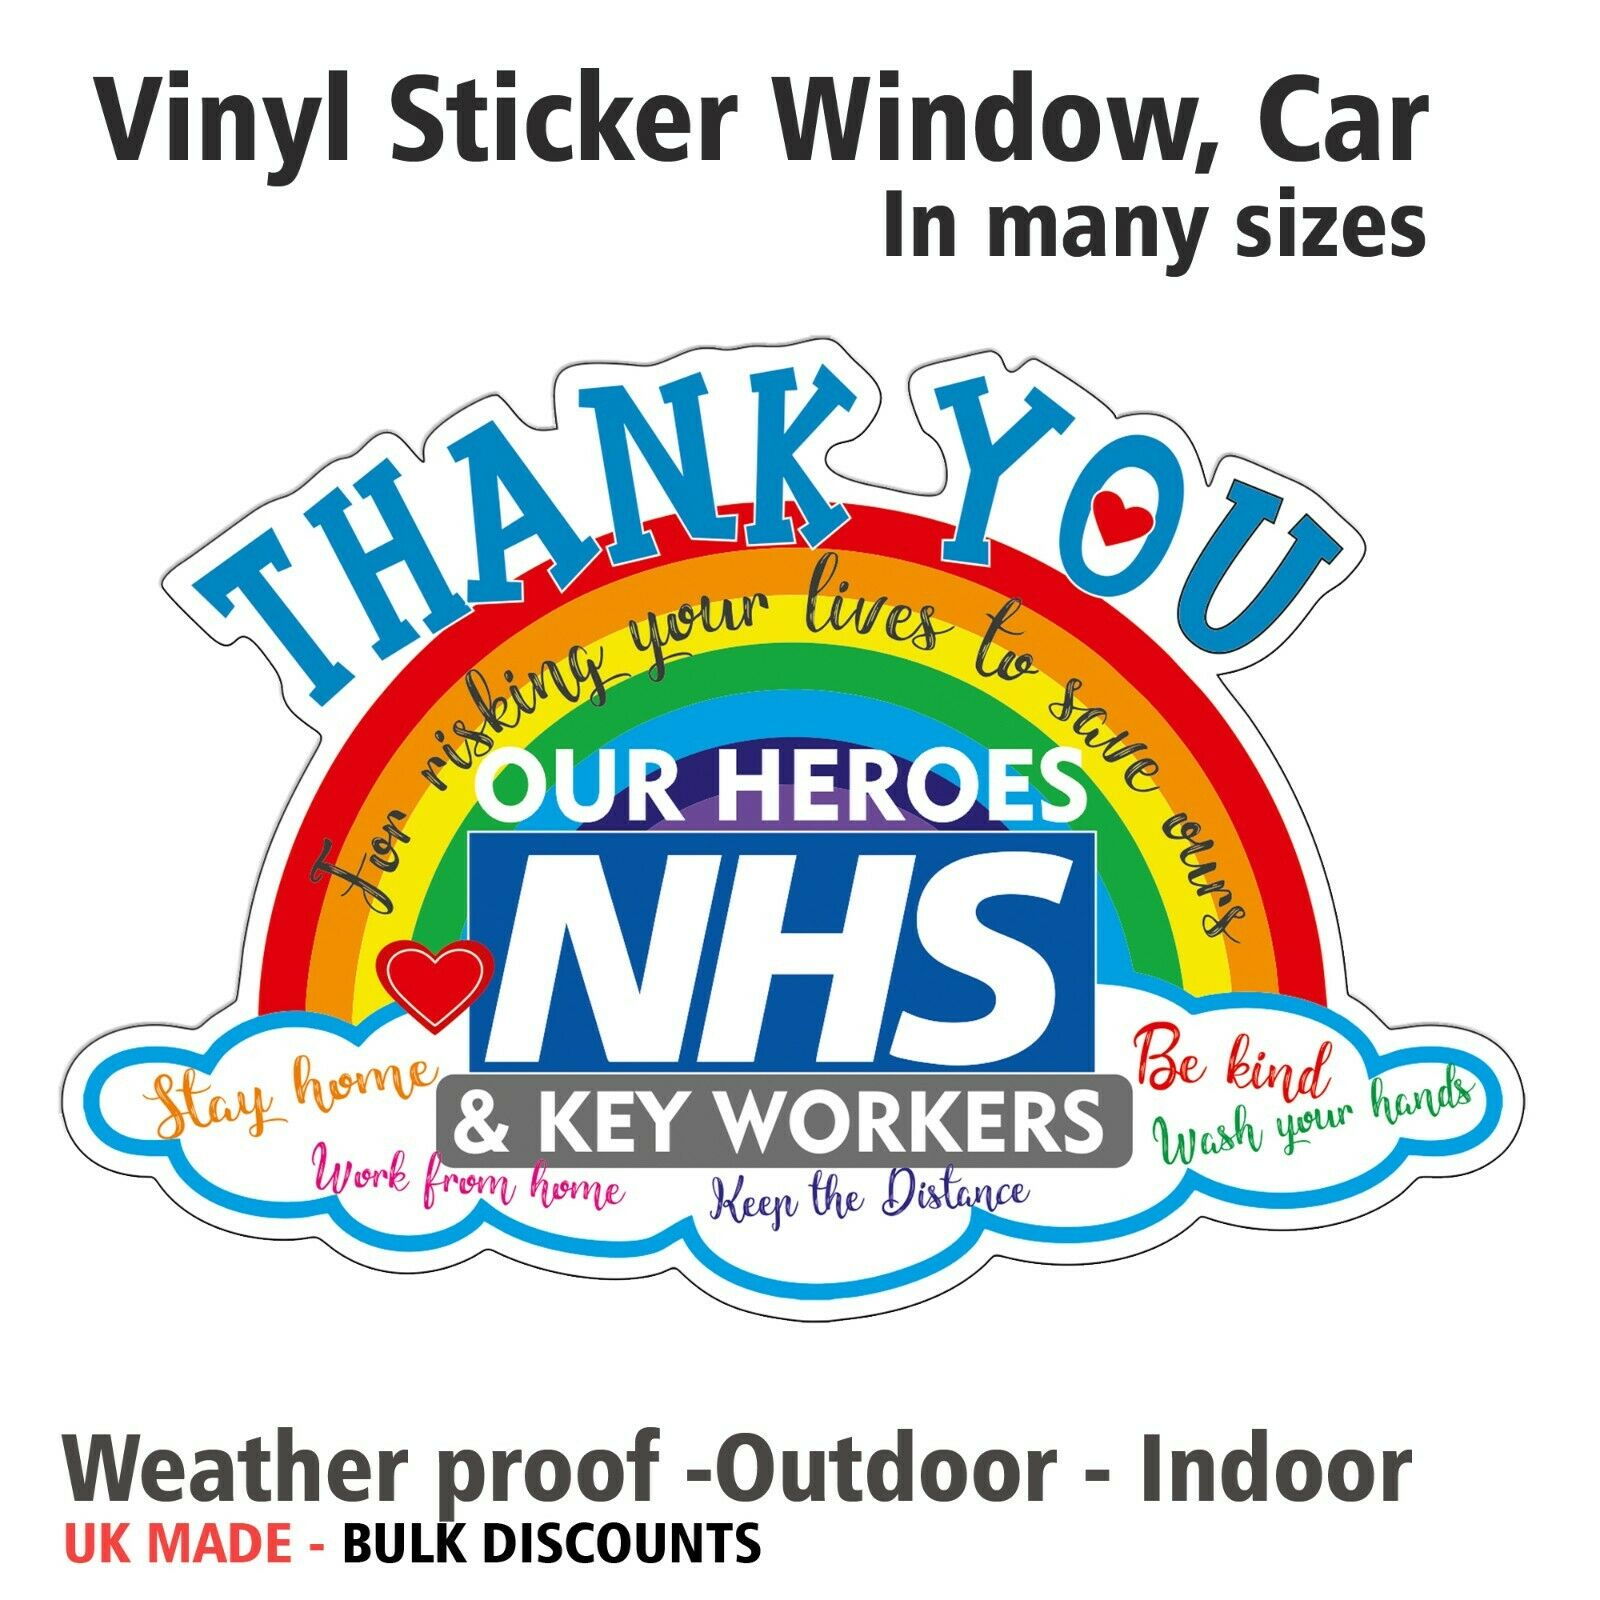 Home Decoration - Rainbow Window vinyl Sticker Thank You NHS&Key workers fight CarBumper Bin decal